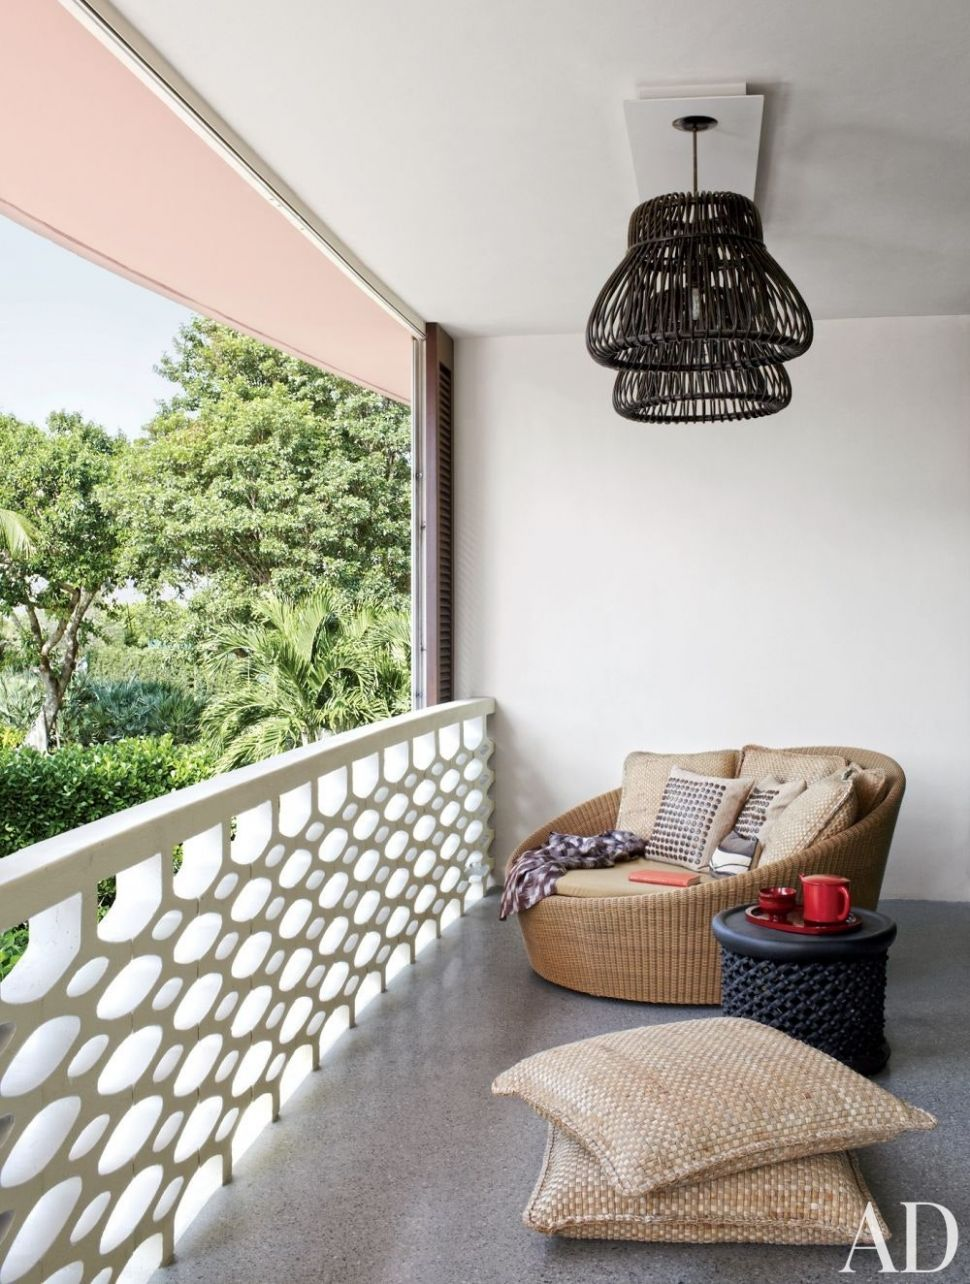 12 Cozy Balcony Ideas and Decor Inspiration | Architectural Digest